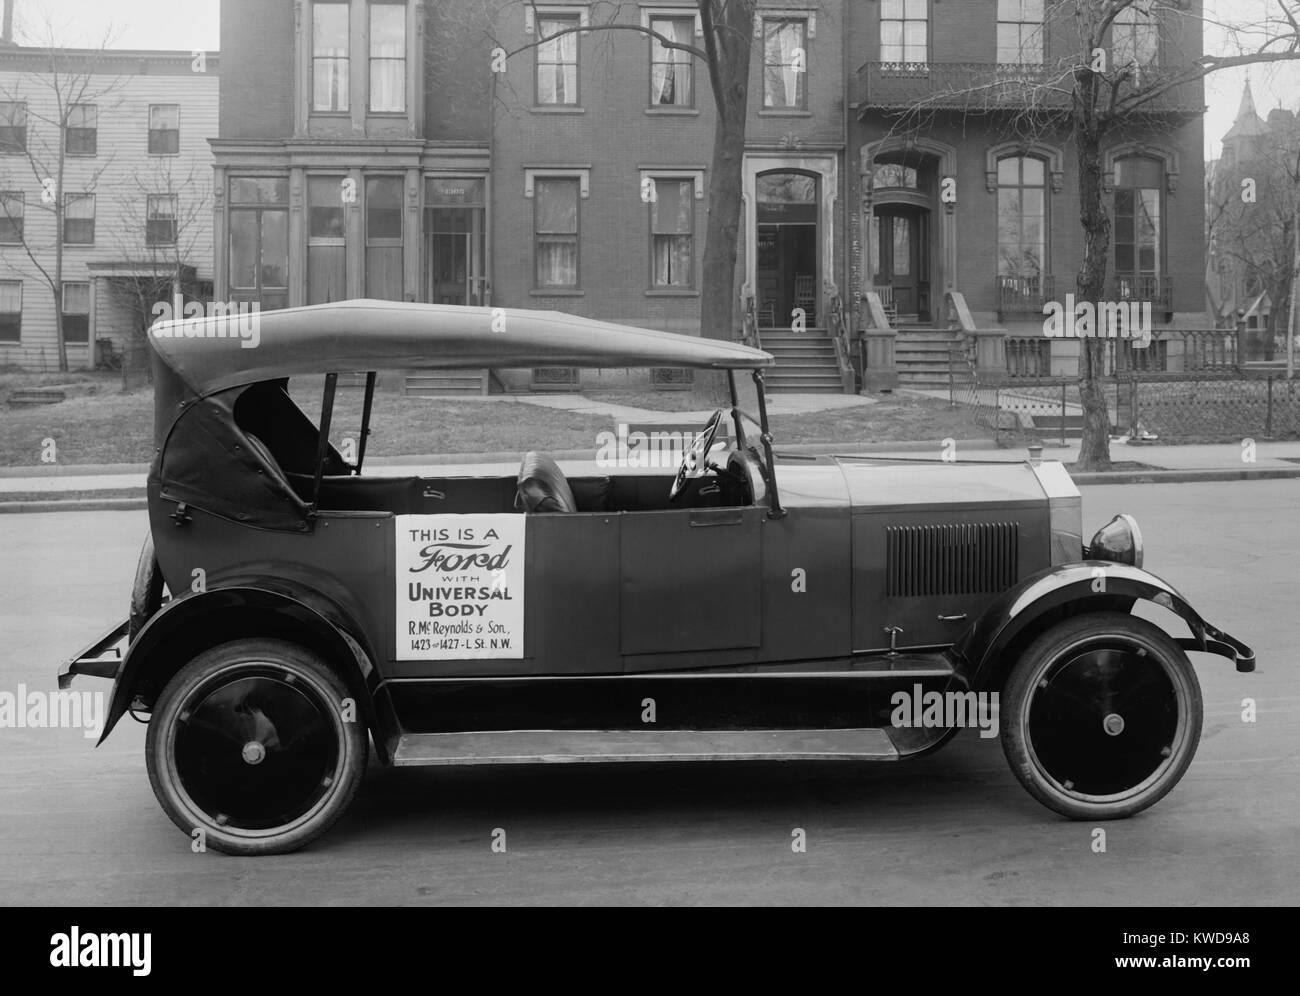 Ford Model T chassis with an 'aftermarket' Universal Body, c. 1921. Universal Body offered bodies, radiators, - Stock Image